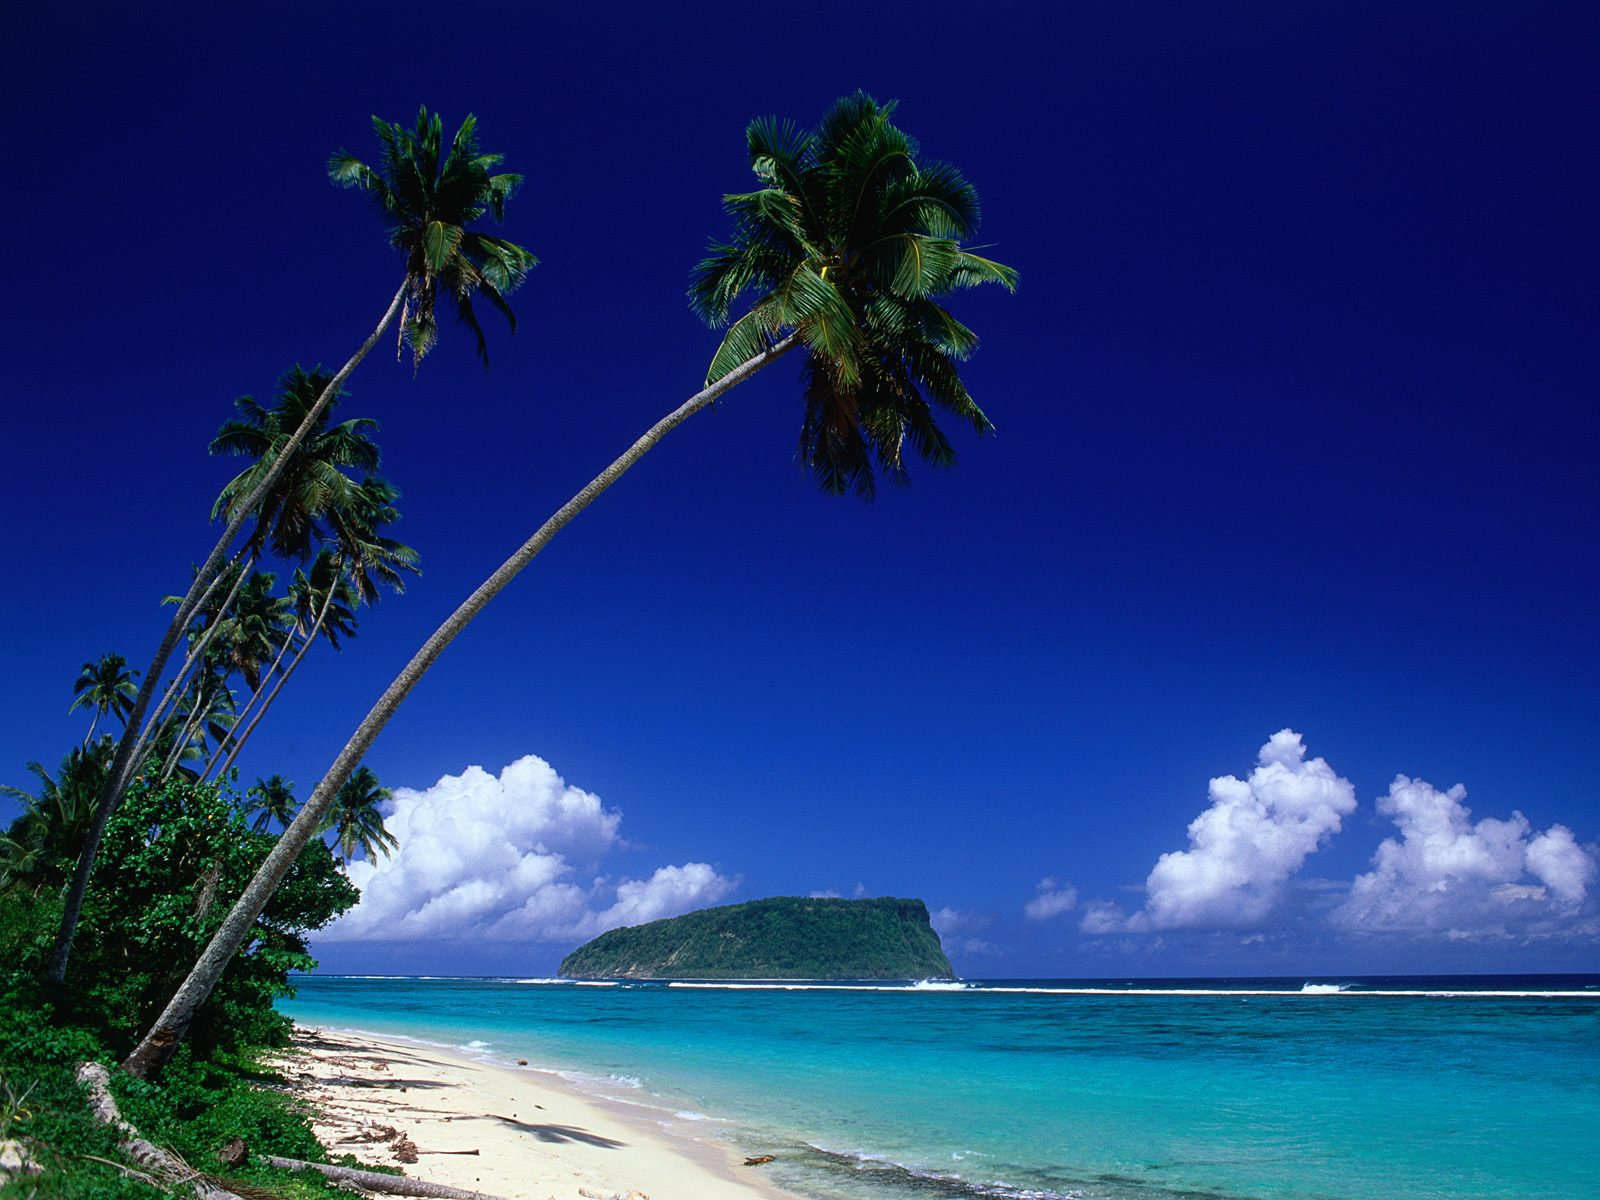 http://www.citypictures.org/data/media/223/Lalomanu_Beach_Island_of_Upolu_Samoa.jpg